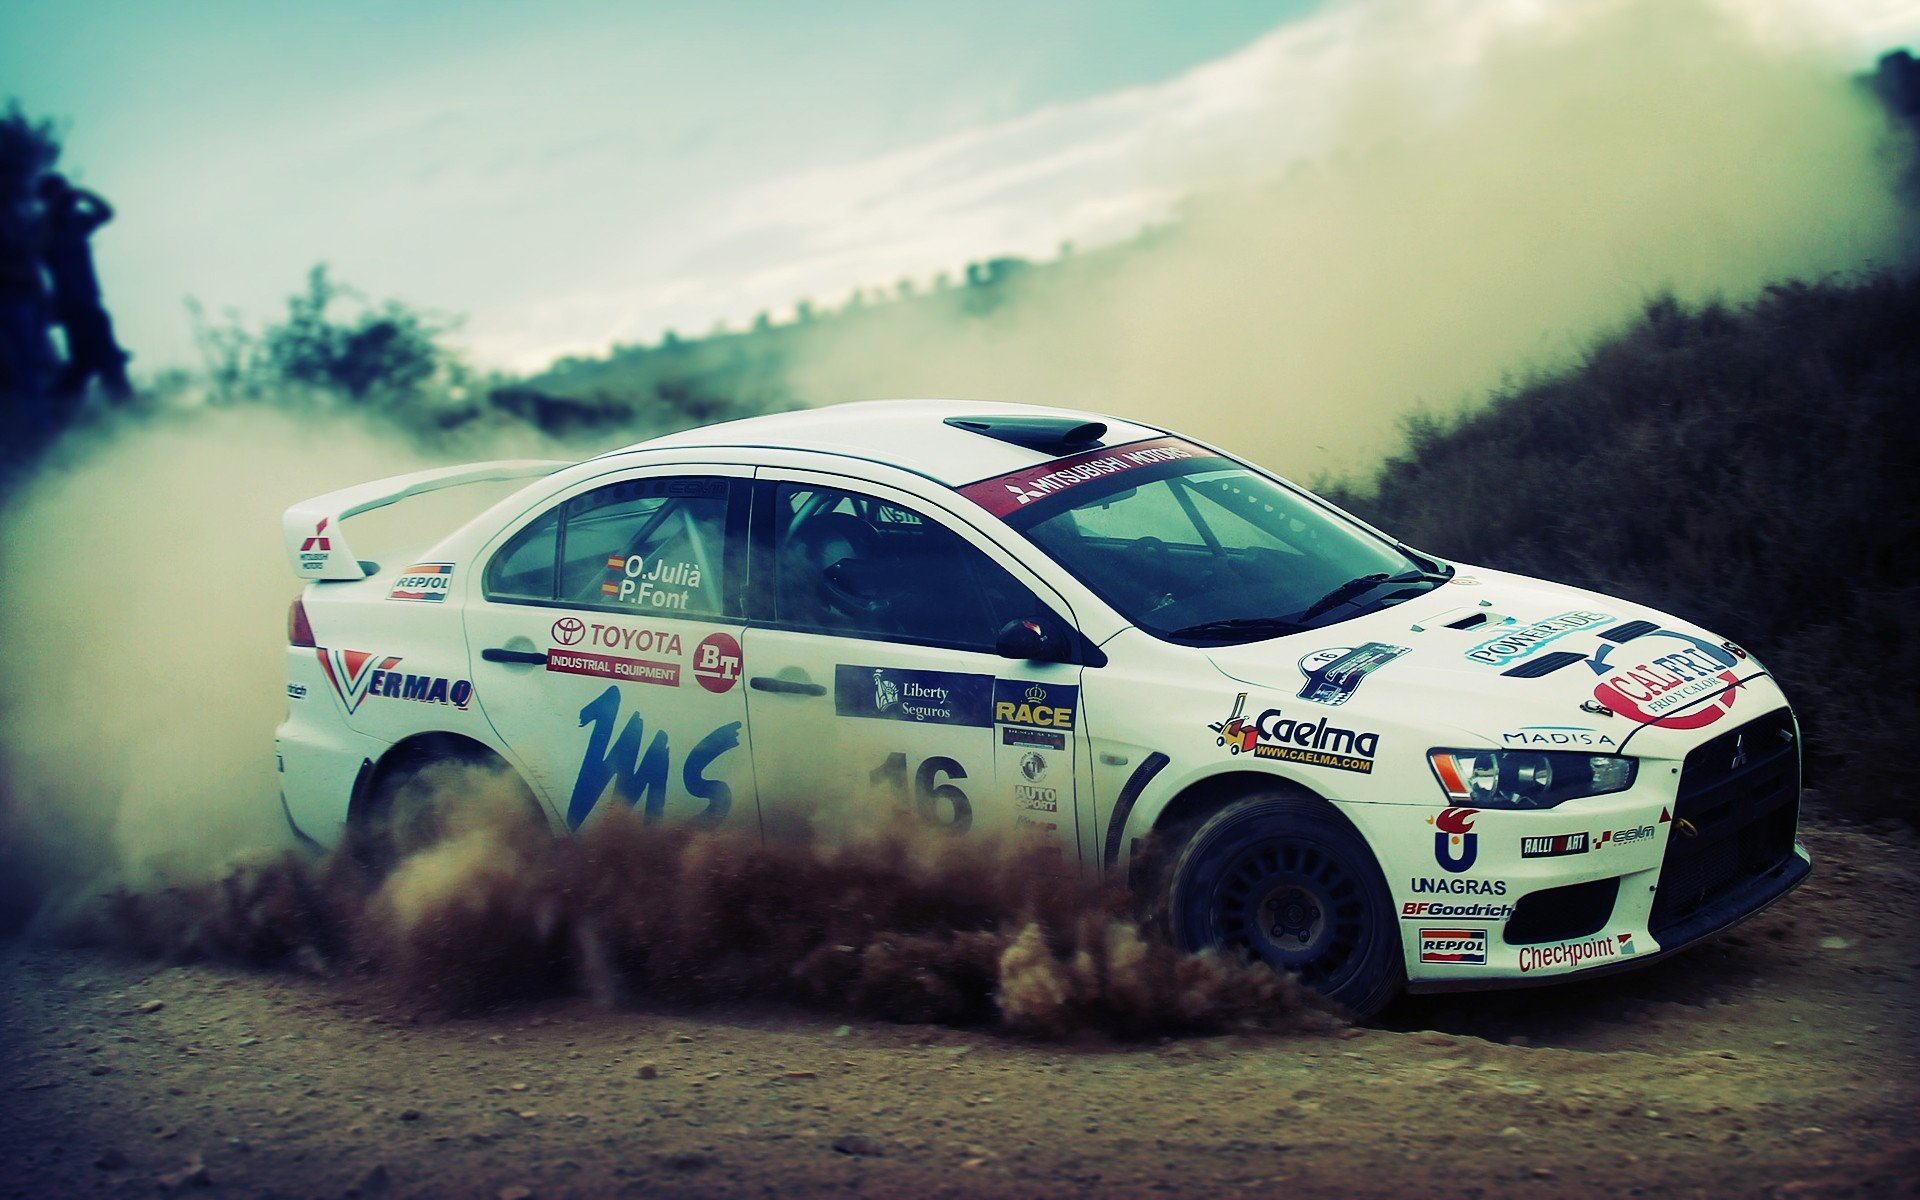 wrc drifting rally cars offroad racing cars wallpaper background 1920x1200